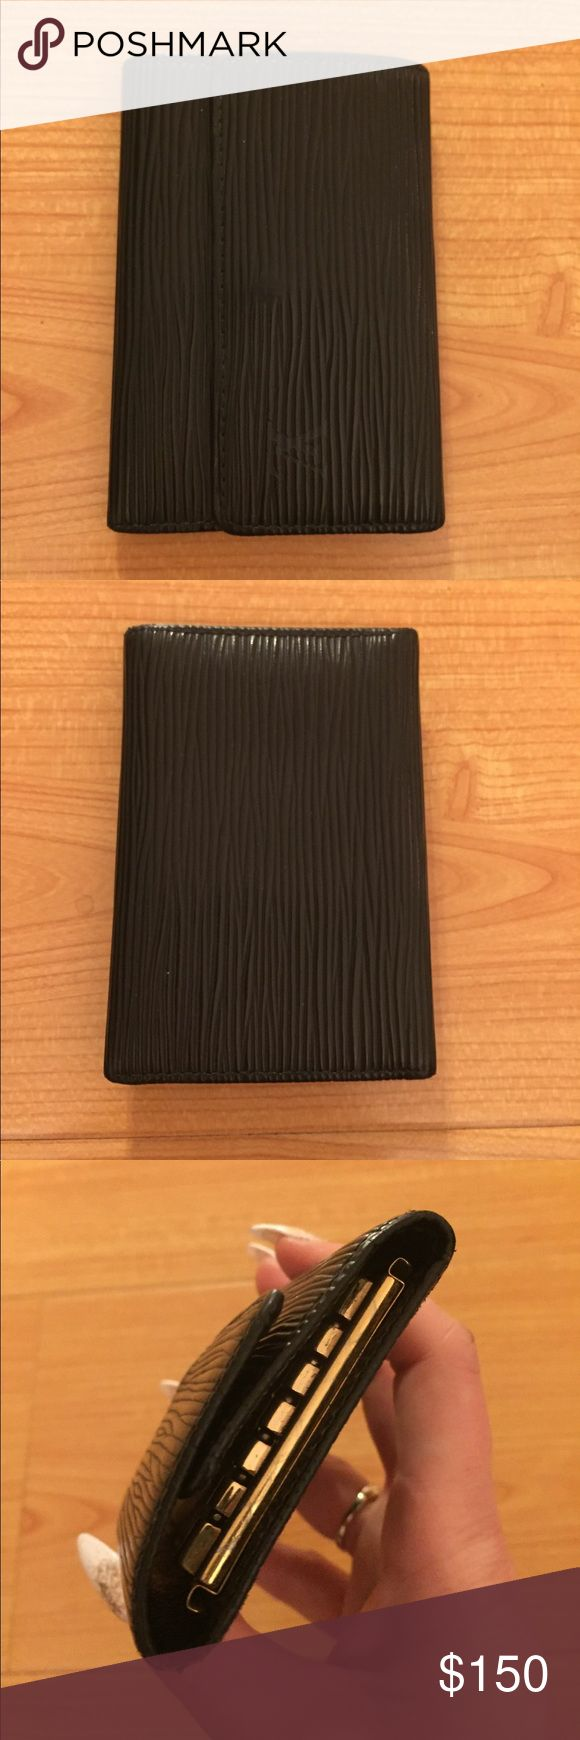 🎄LOUIS VUITTON Black Epi Large Key Wallet Holder Fabulous little key 🔑 holder wallet from Louis Vuitton. Black Epi leather. The larger, 6 ring style. Excellent, like new condition. Snap closure.  Date code CA0020. Absolutely authentic. Louis Vuitton Accessories Key & Card Holders